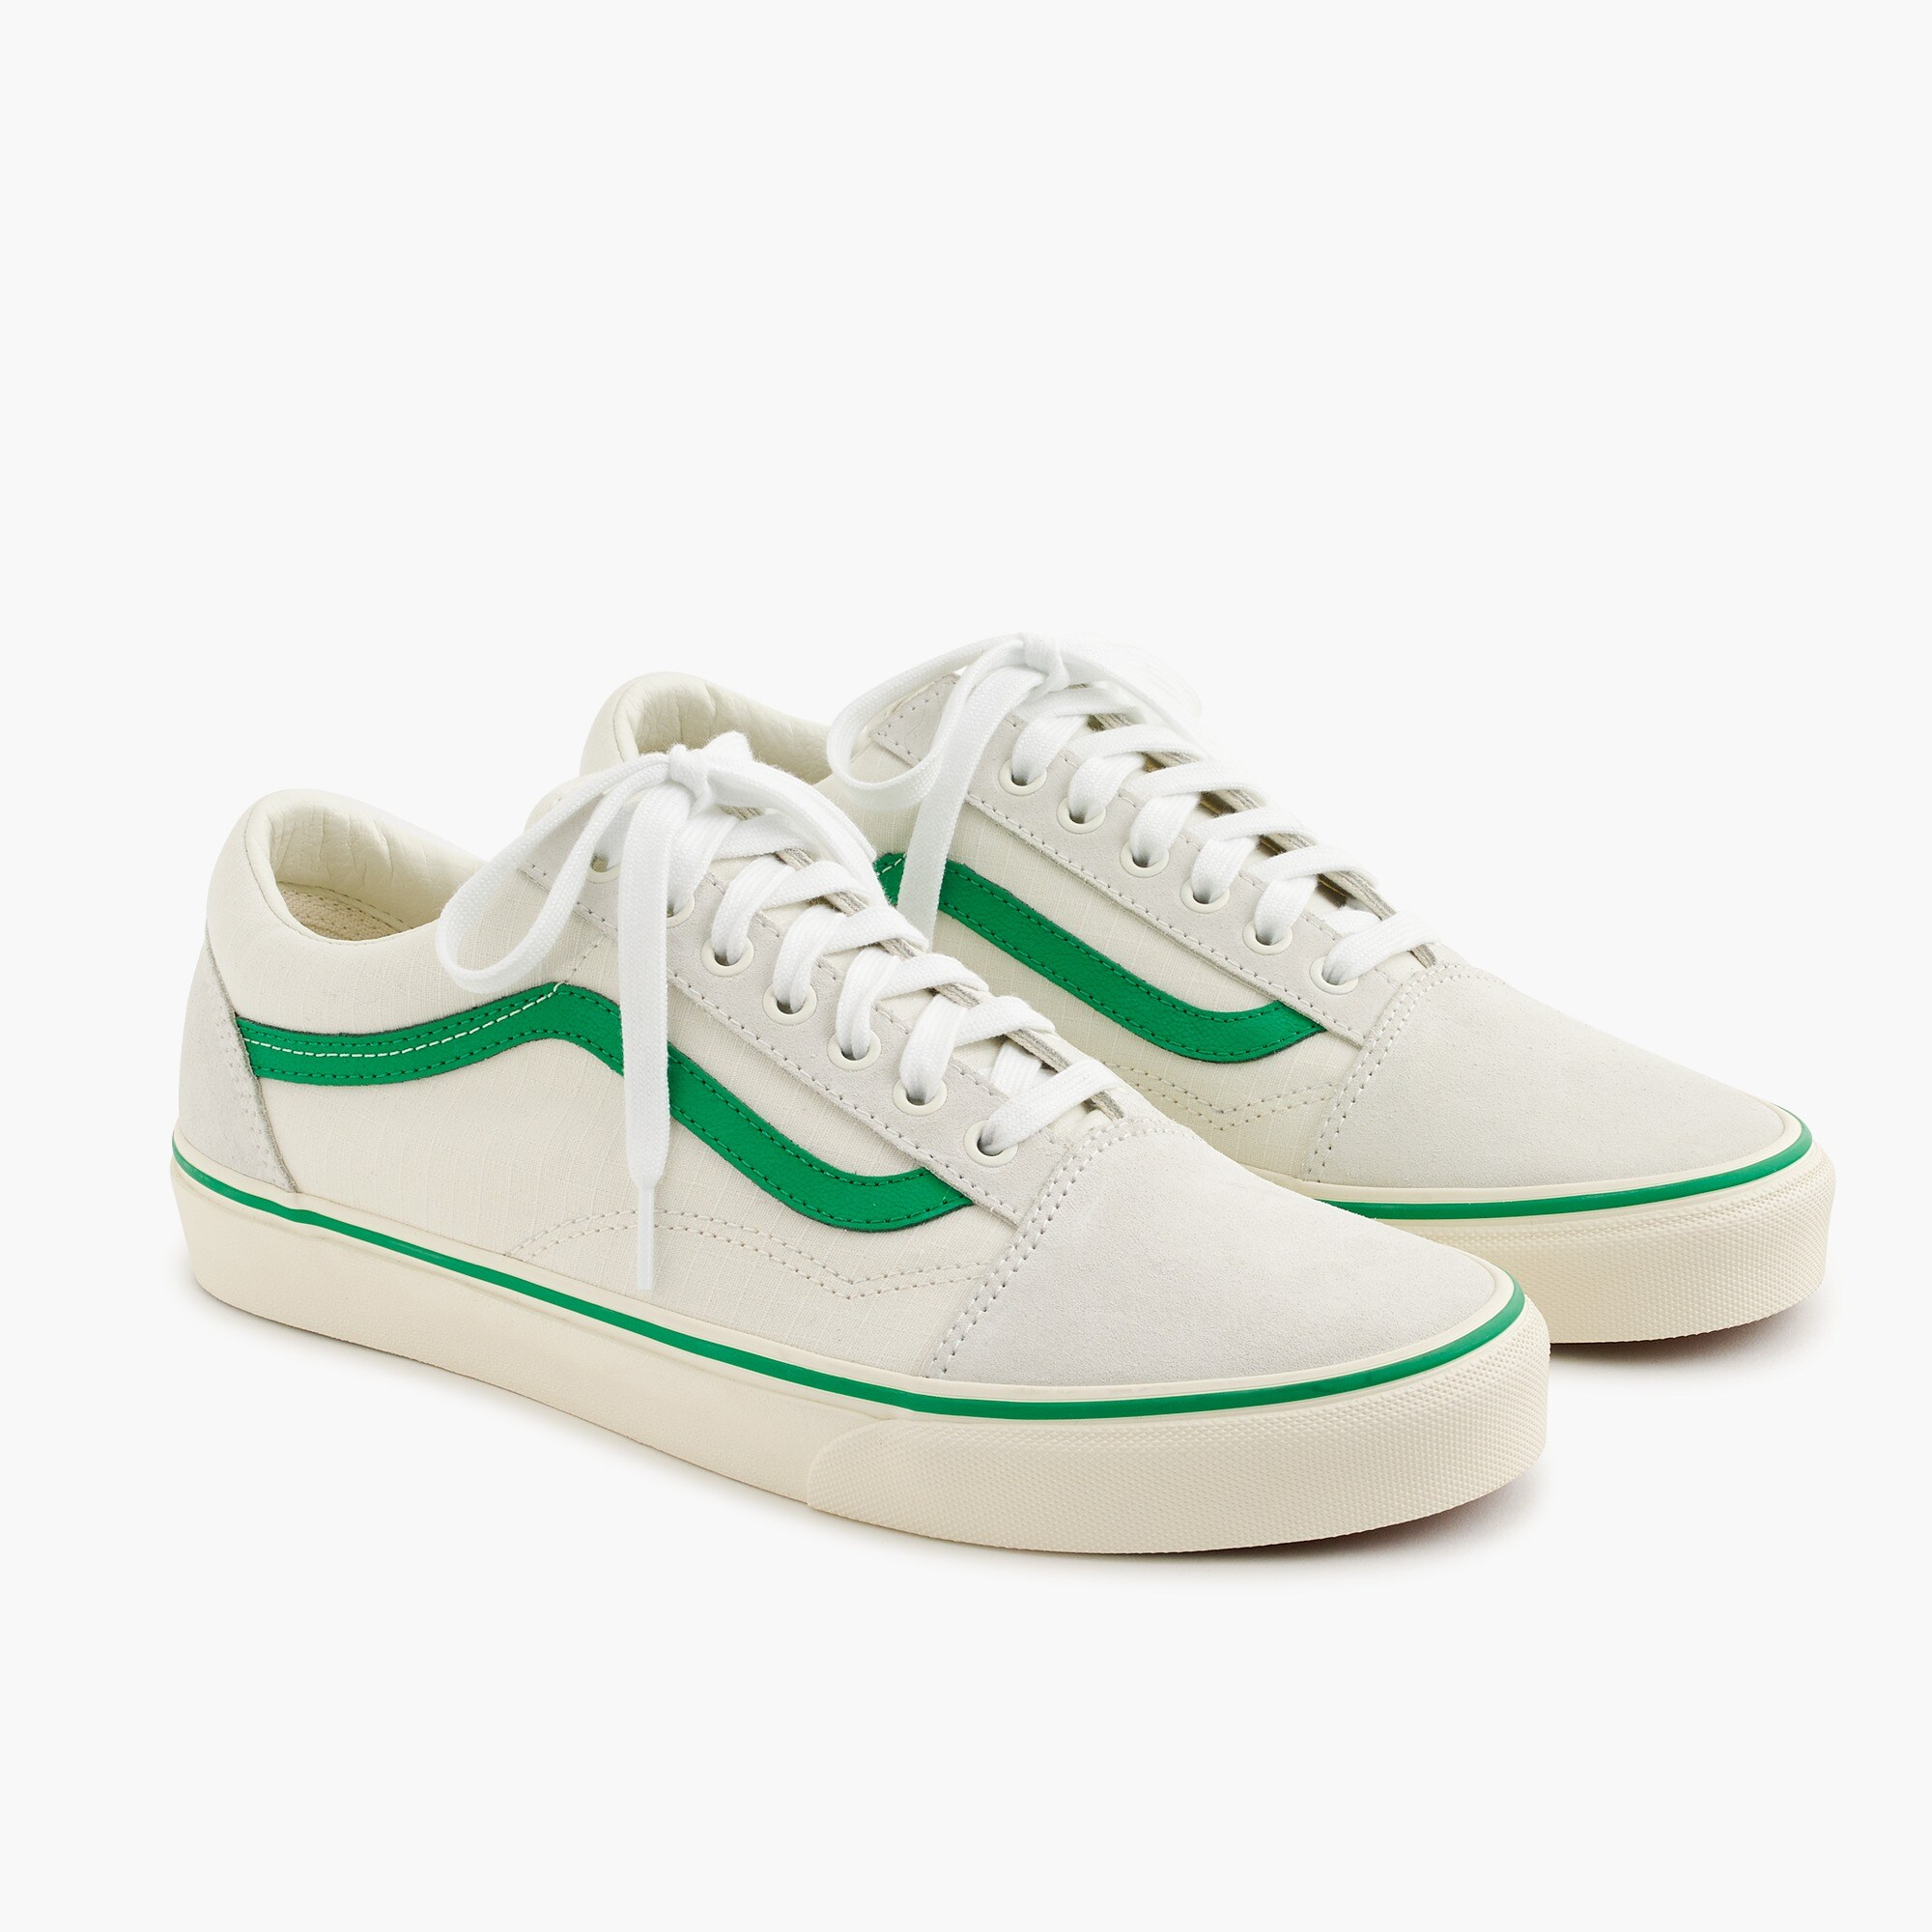 Vans® for J.Crew Old Skool sneakers in ripstop cotton men j.crew in good company c